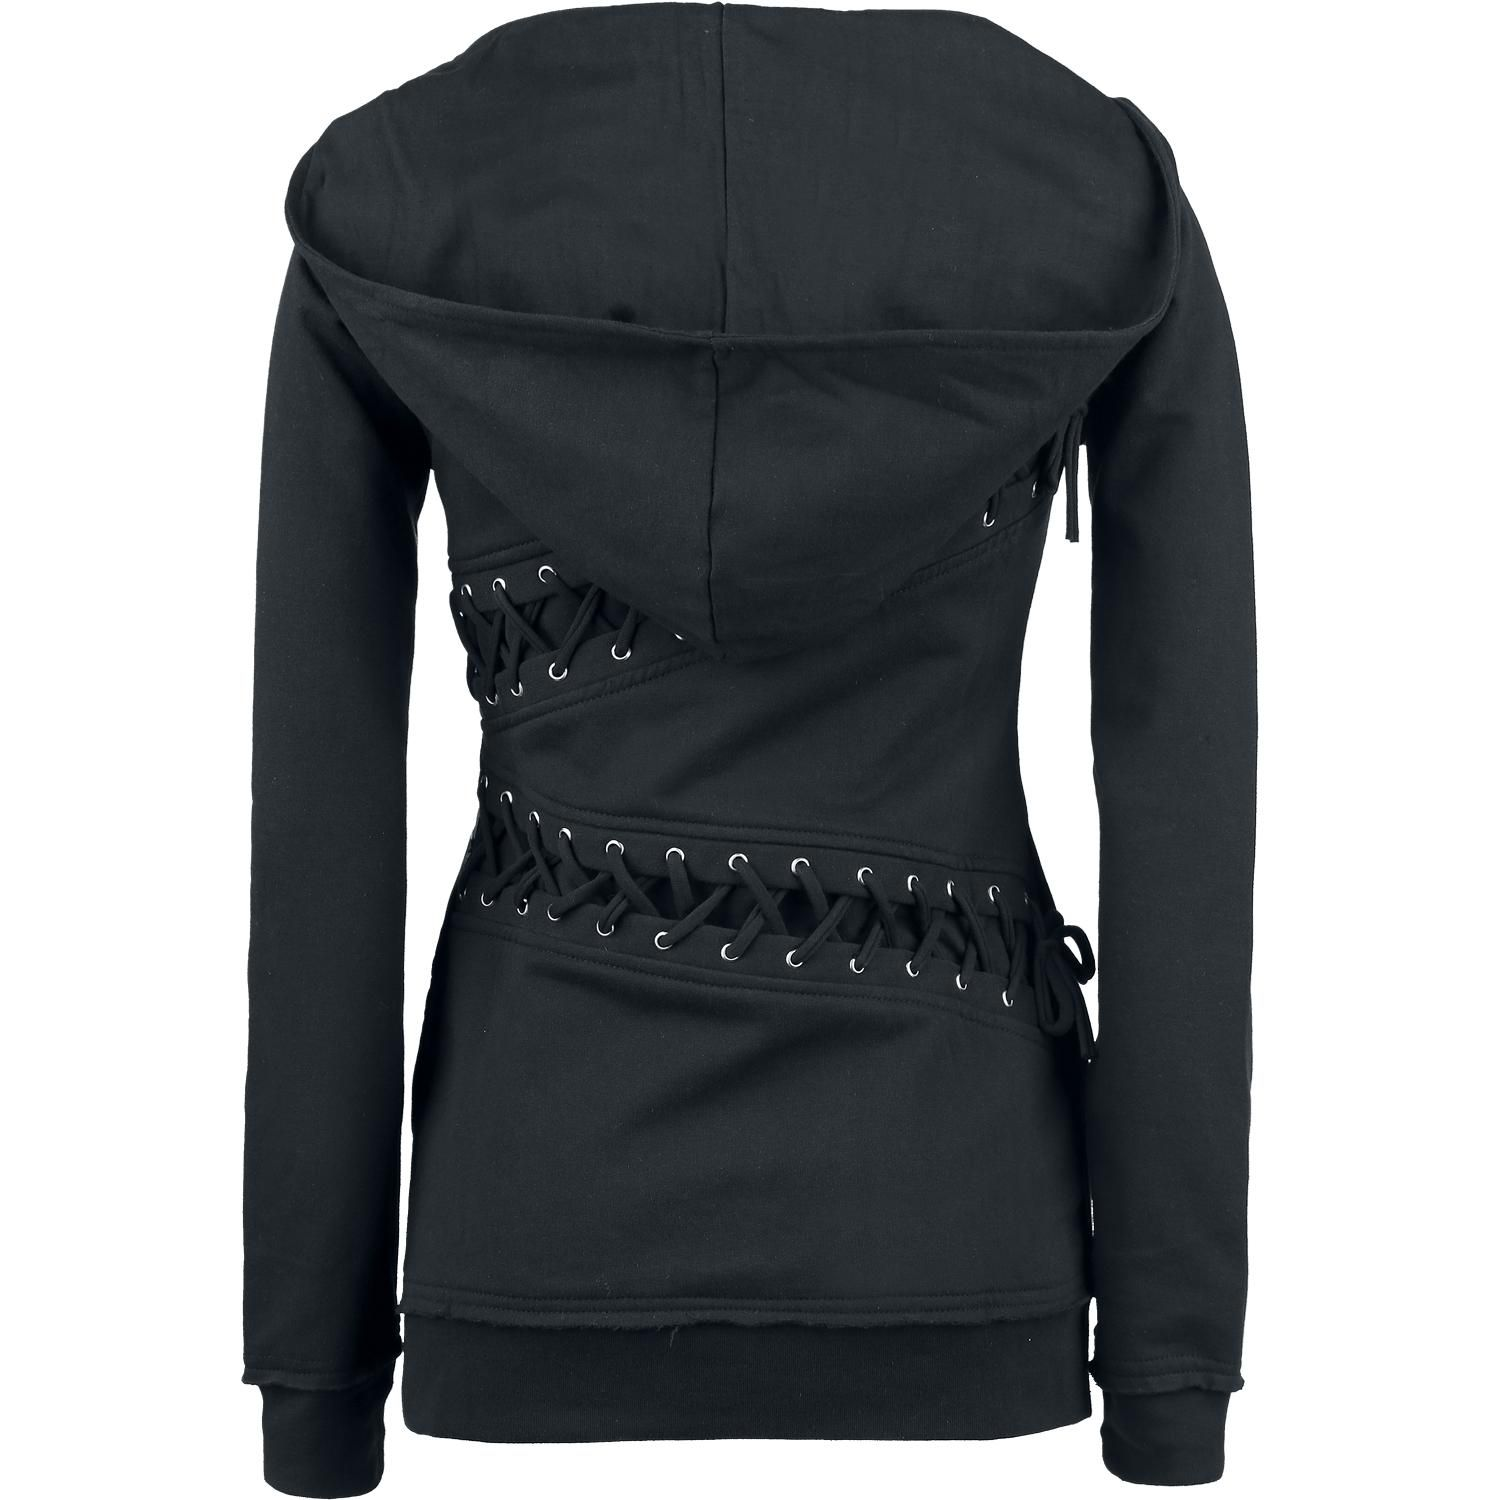 Wing - Girls hooded zip by Batman - Article Number: 272245 - from 62.99 € - EMP Merchandising ::: The Heavy Metal Mailorder ::: Merchandise ...